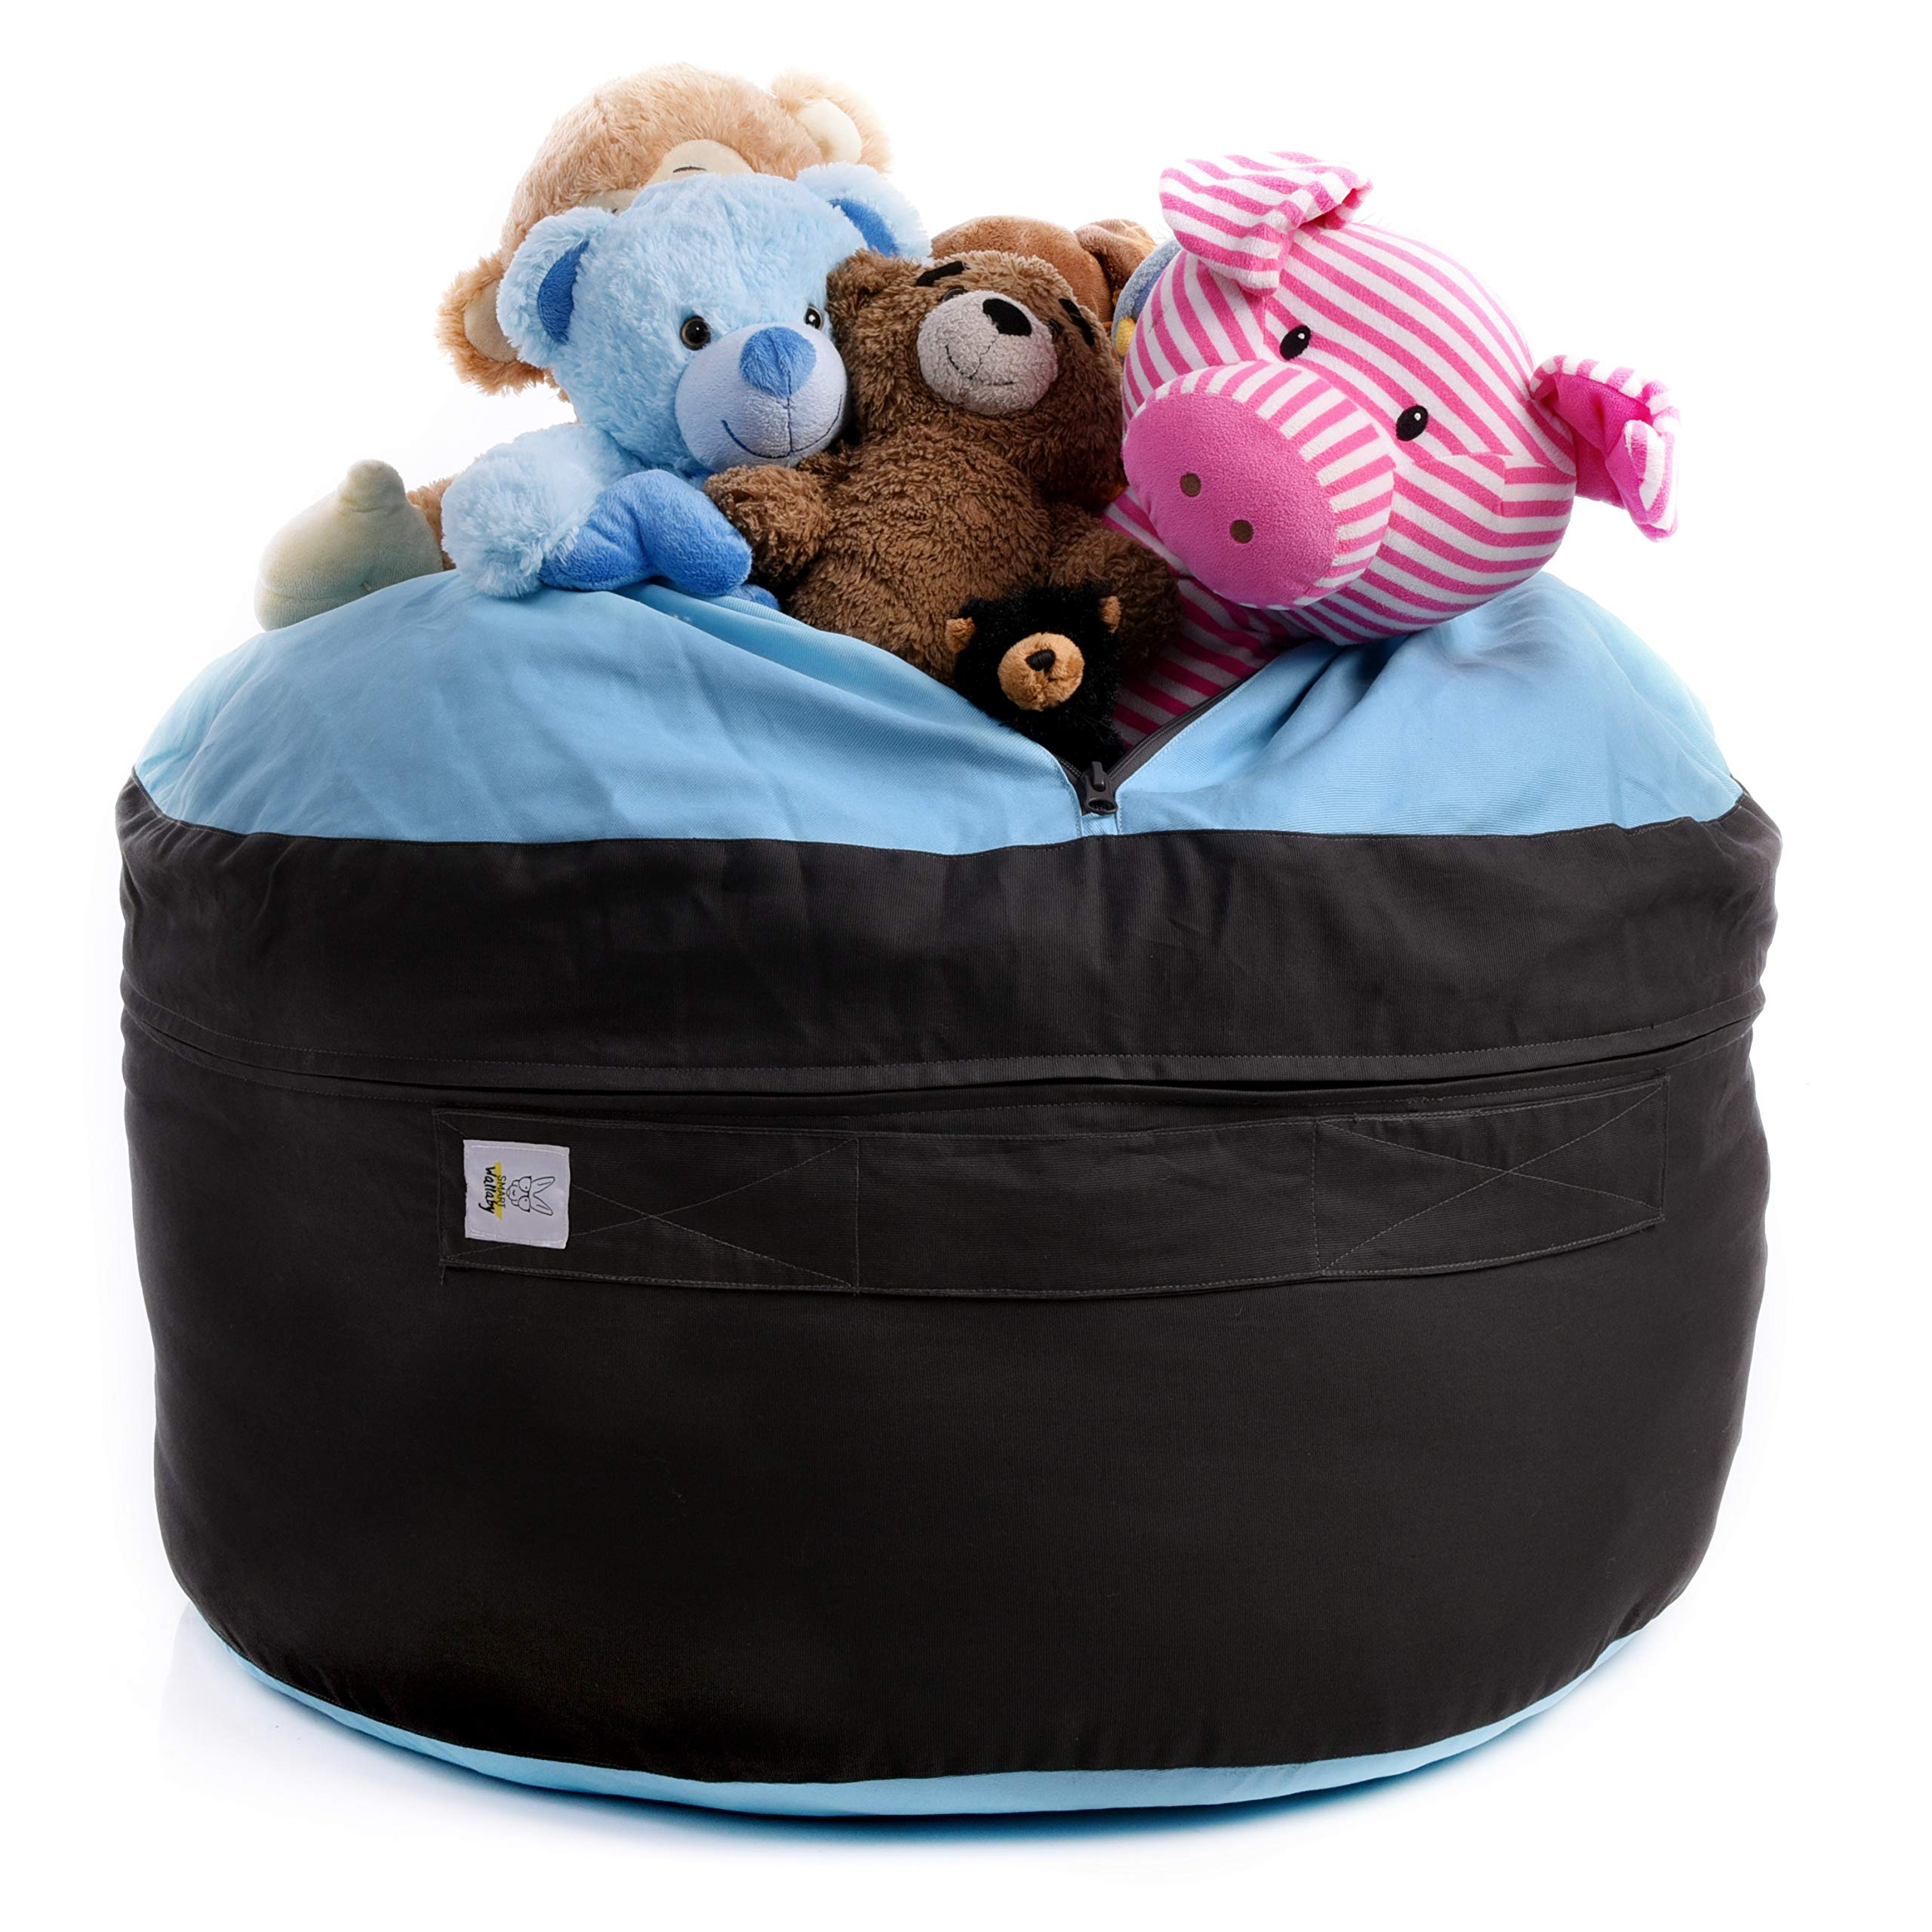 SMART WALLABY Storage Bean Bag Chair for Soft Toys, Stuffed Animals, Clothes, Linens and Blankets. 2 Sizes in-1 Expands to Reach XXL. Large Seating Area. Choose from 4 Stylish Designs